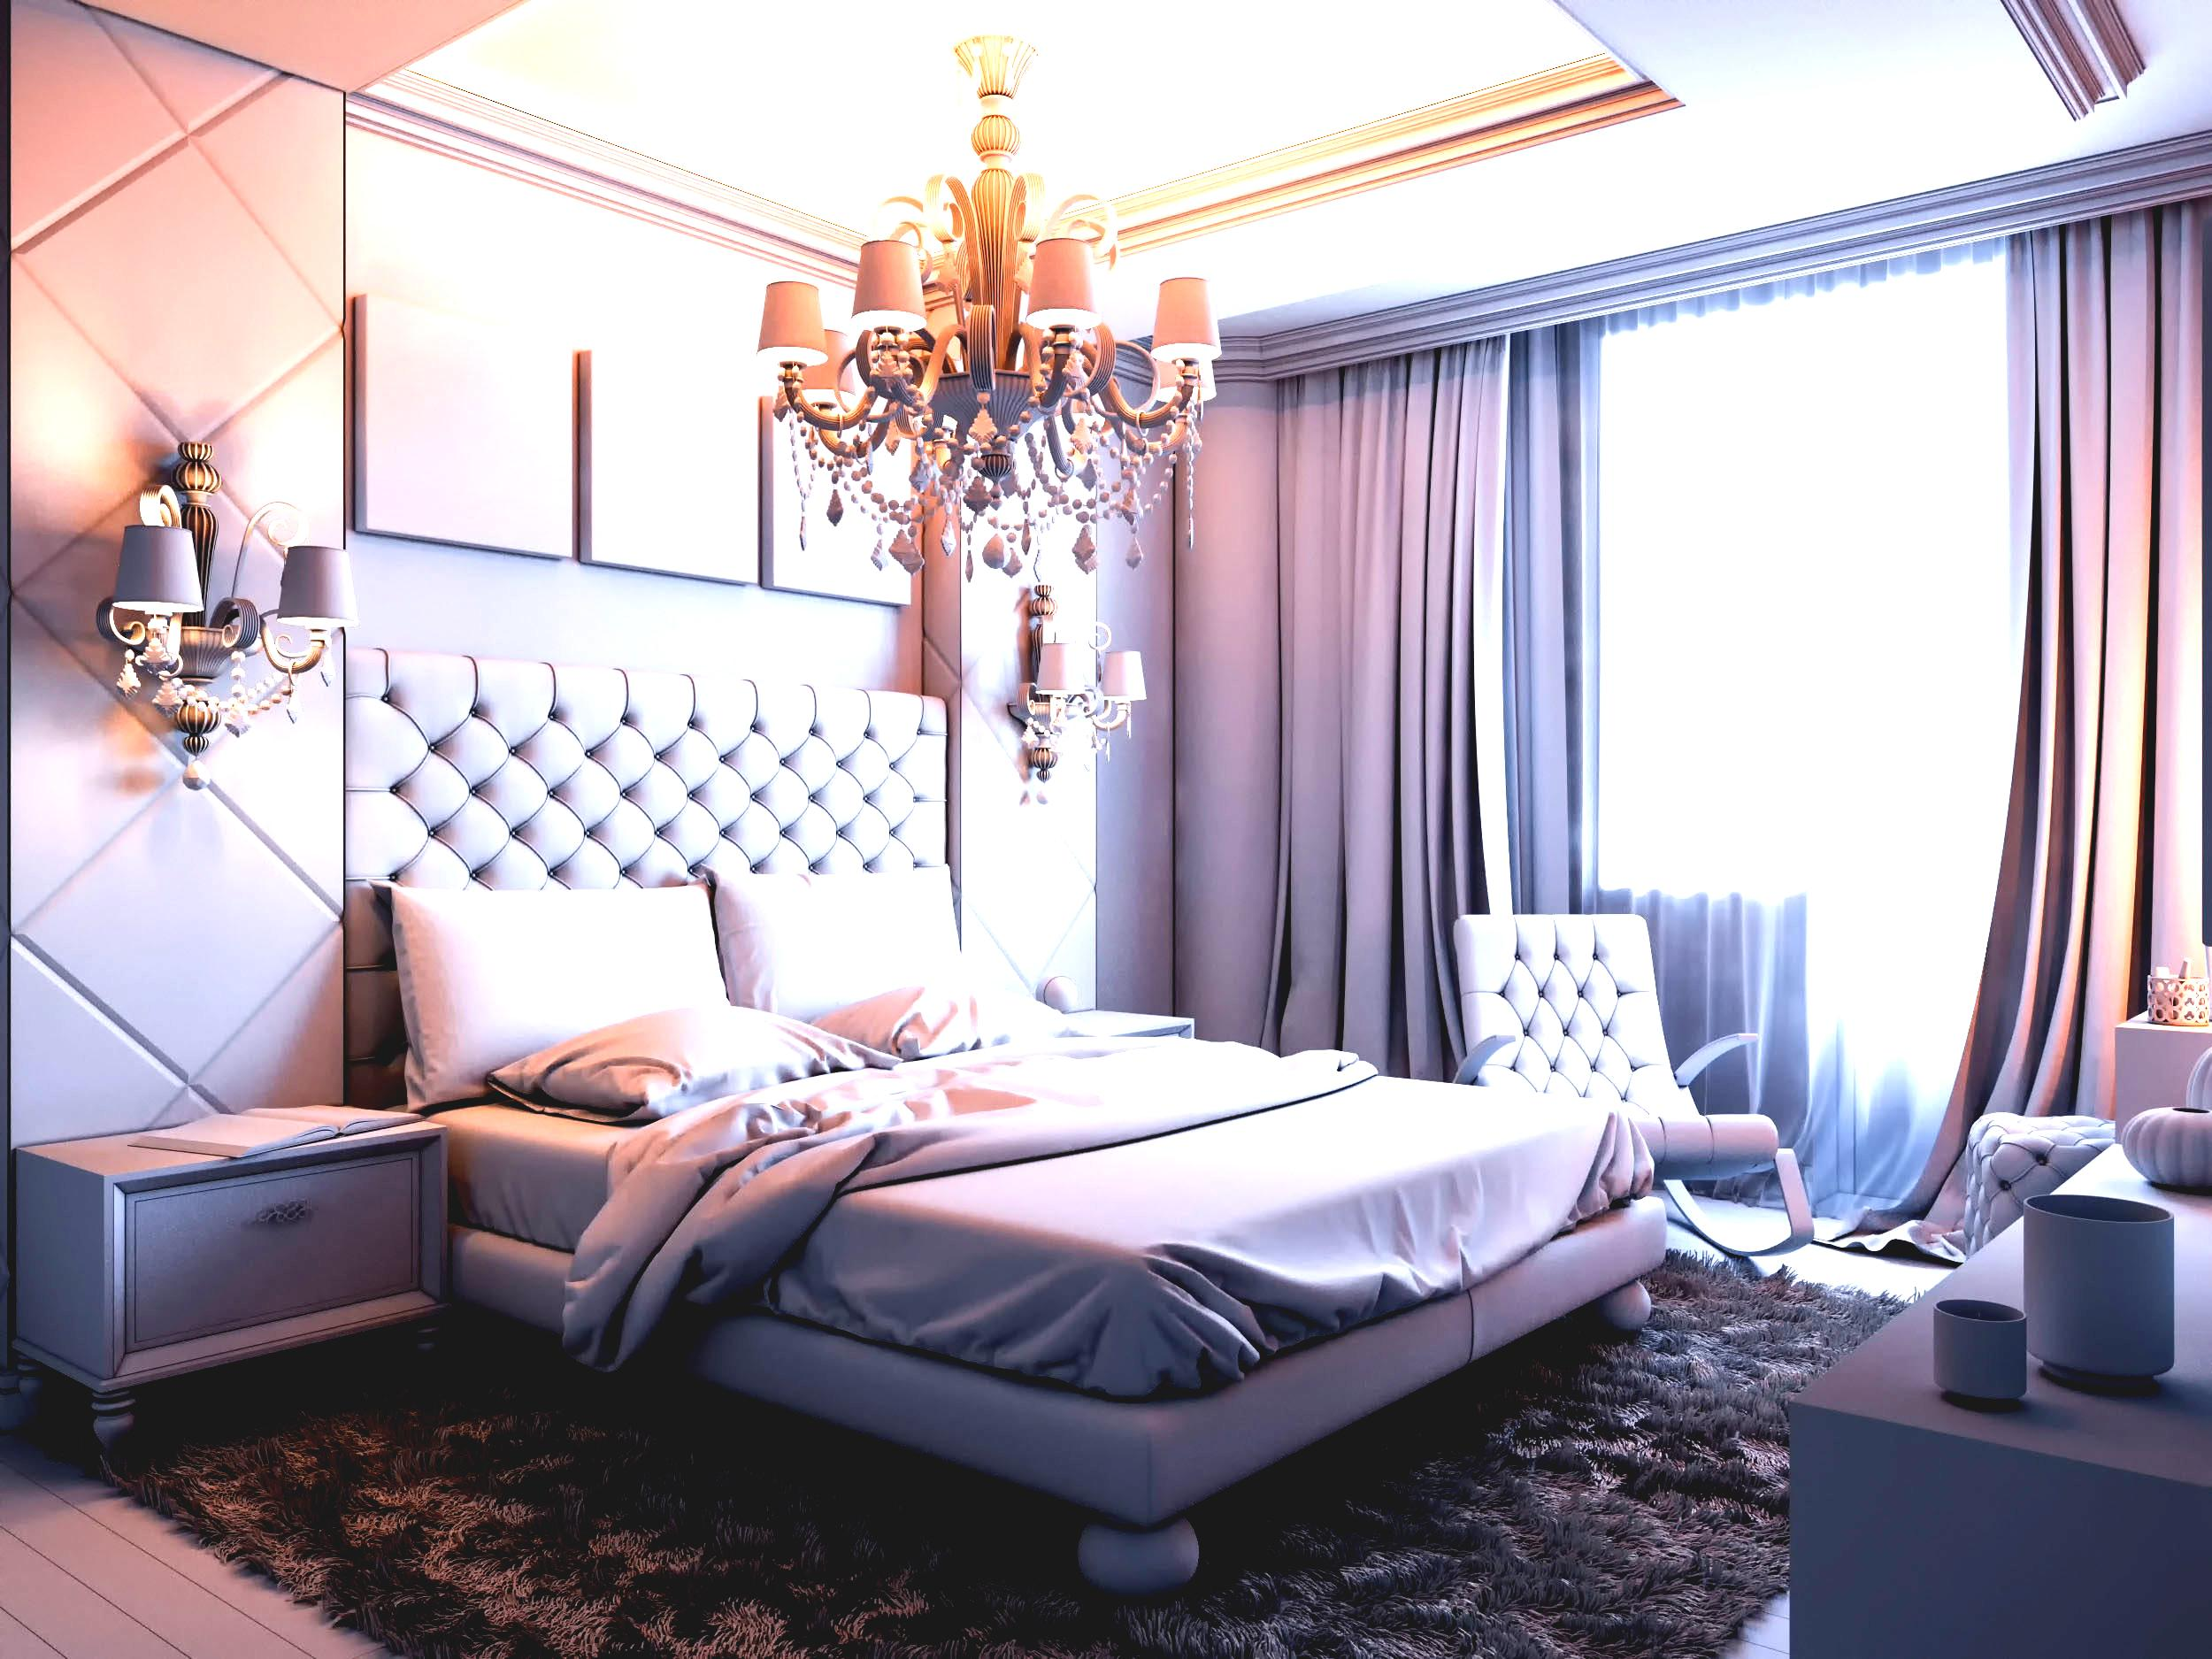 full size of romantic bedroom ideas lamps for her in the room colours couples most romance on bed themes couple decoration him